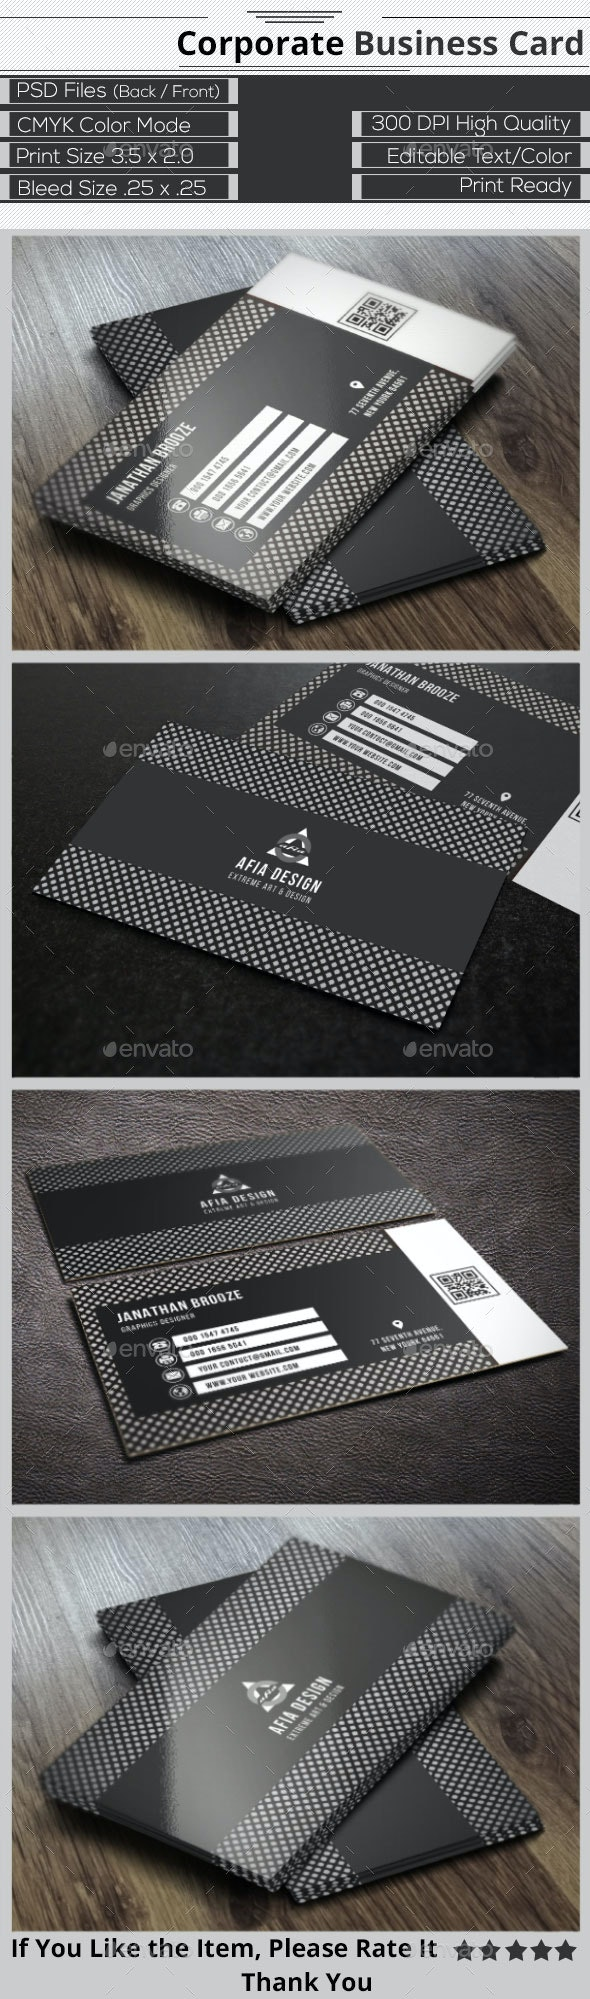 Black & White Corporate Business Card - Corporate Business Cards